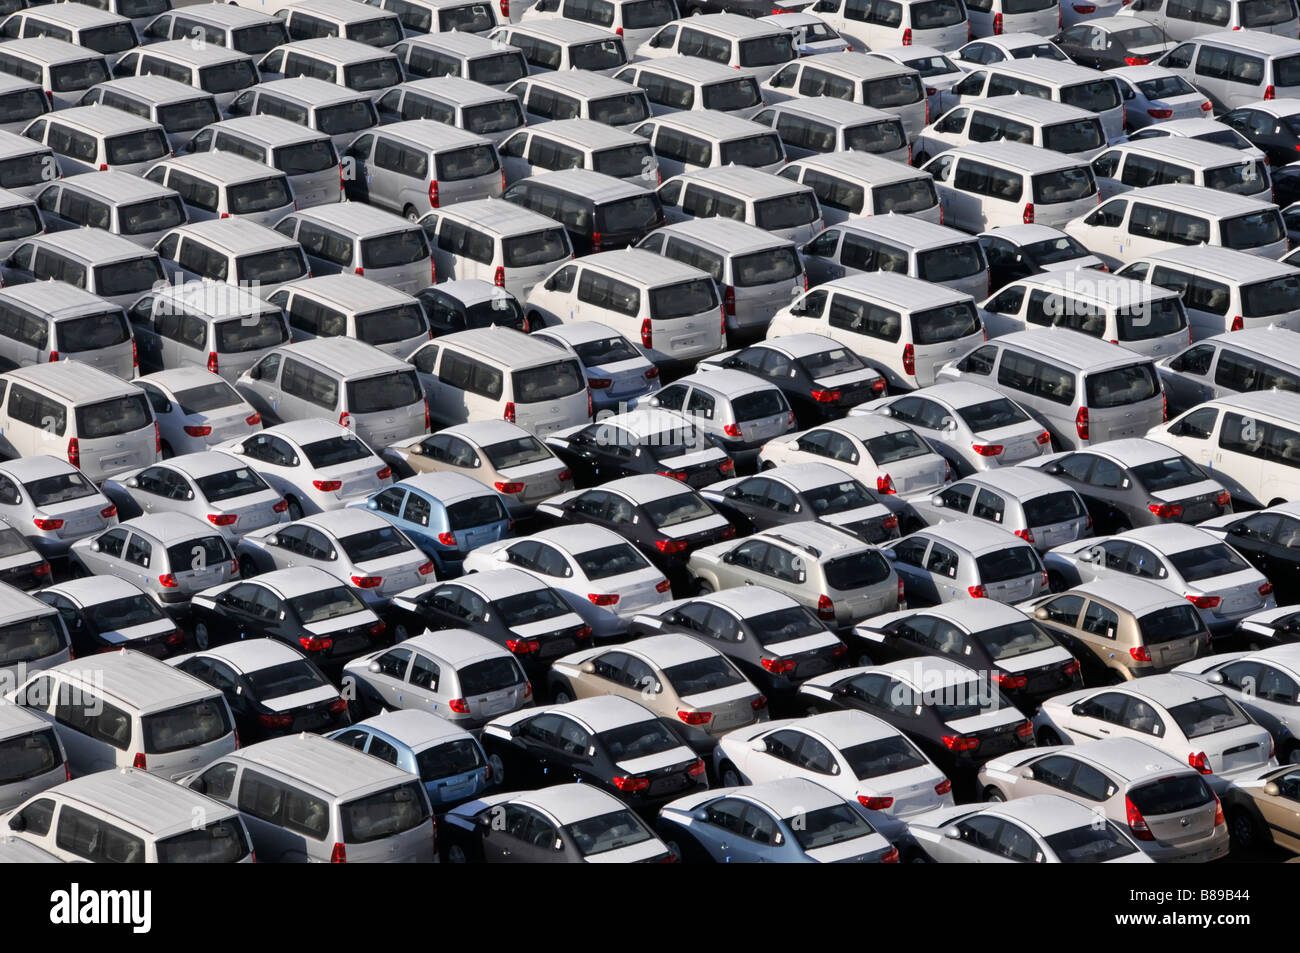 Bahrain looking down close up on dockside storage of imported new cars in parking lot awaiting distribution - Stock Image